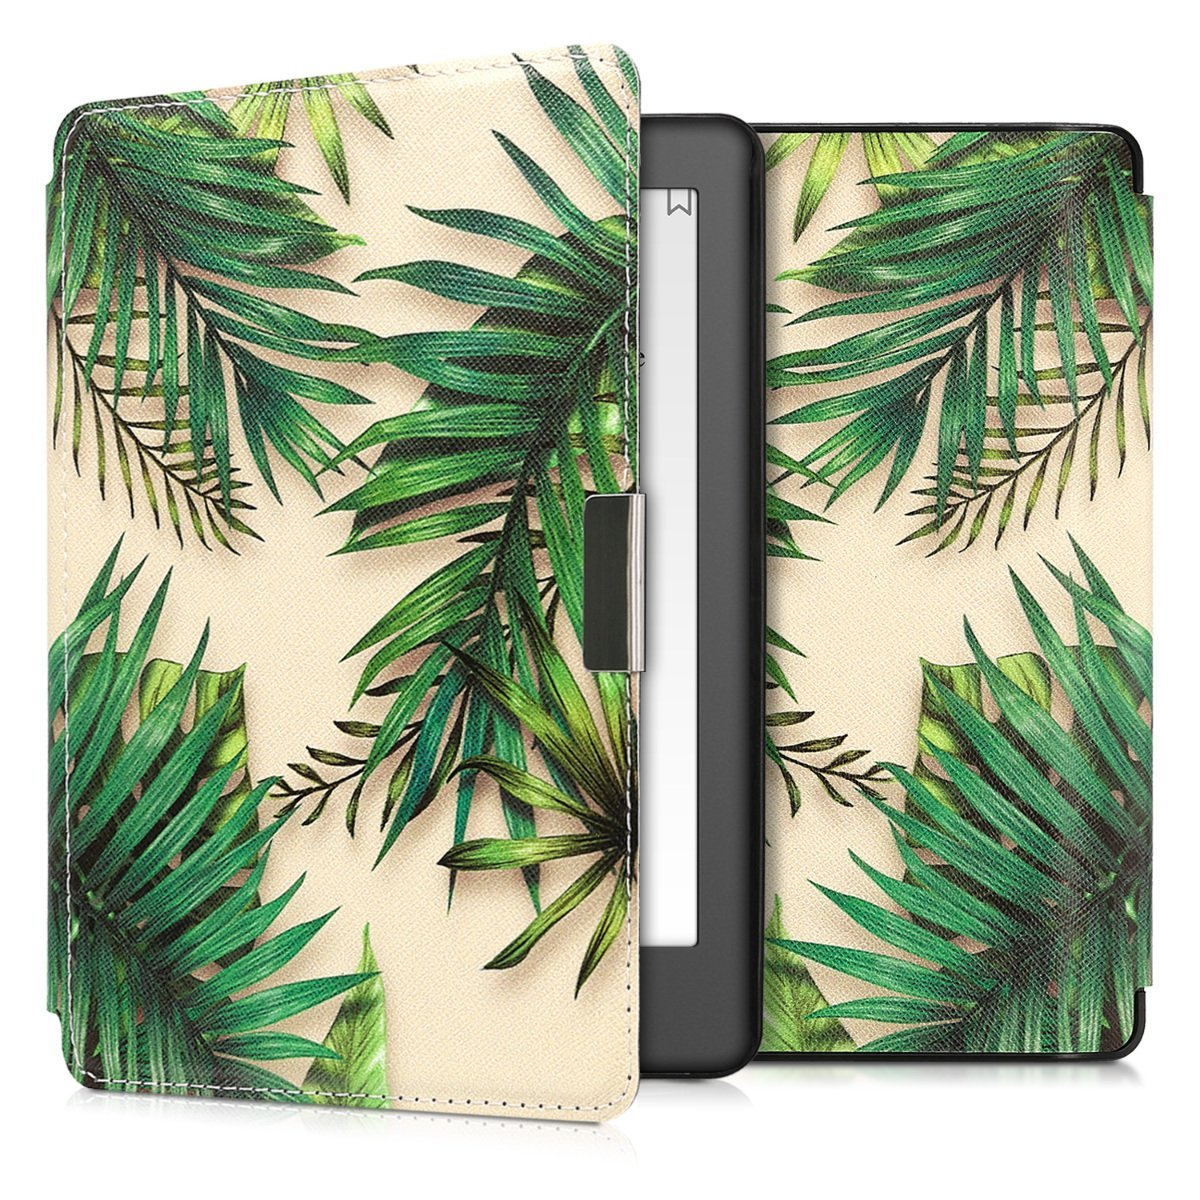 kwmobile Case for Kobo Aura Edition 2 - Book Style PU Leather Protective e-Reader Cover Folio Case - green beige